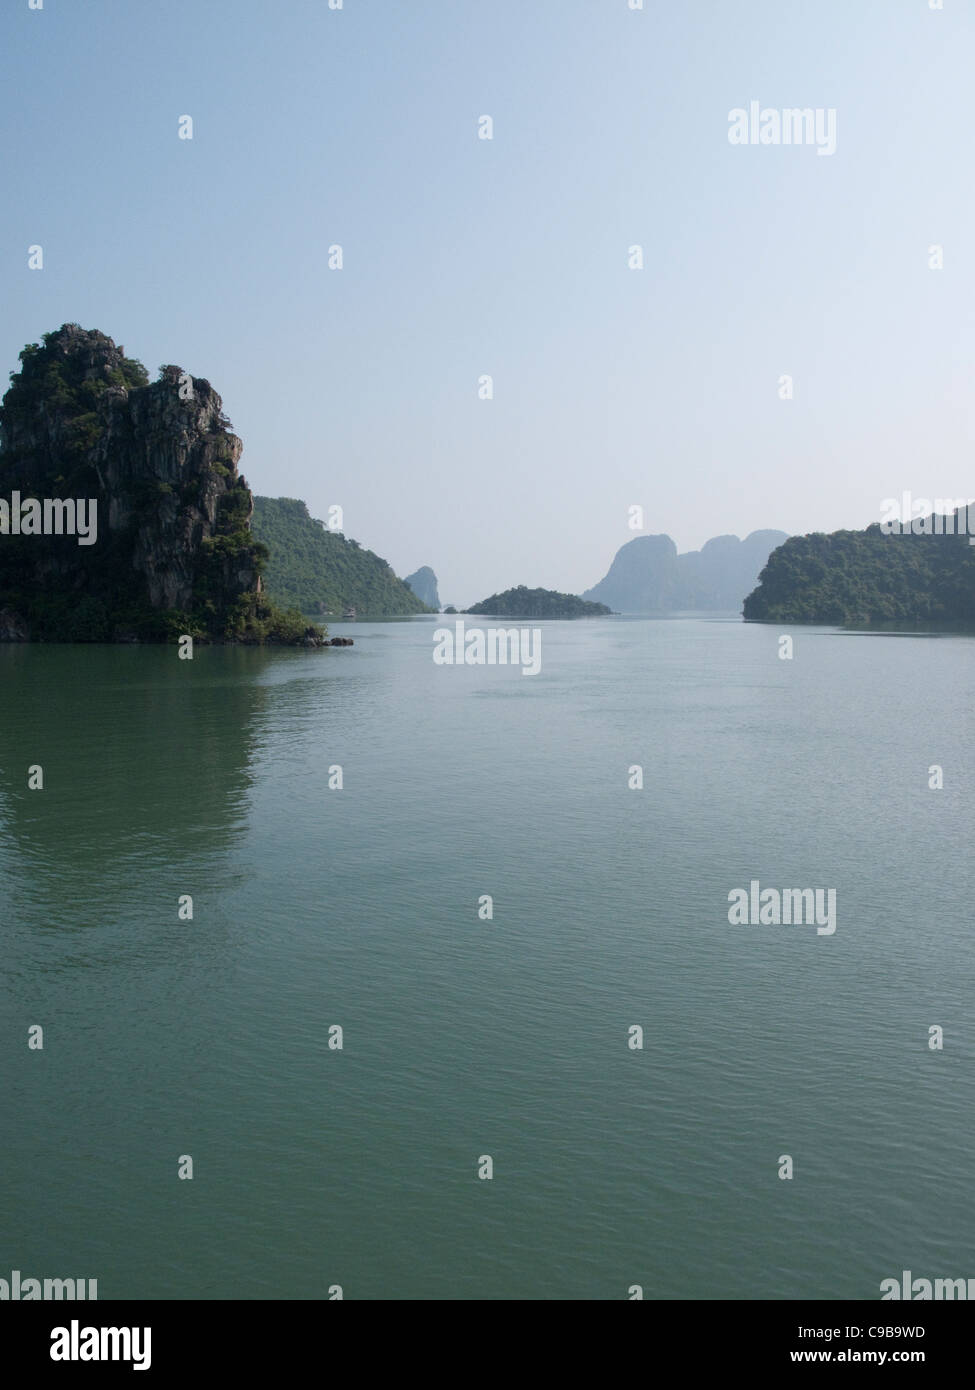 Halong Bay rock formations in the South China Sea, Vietnam - Stock Image